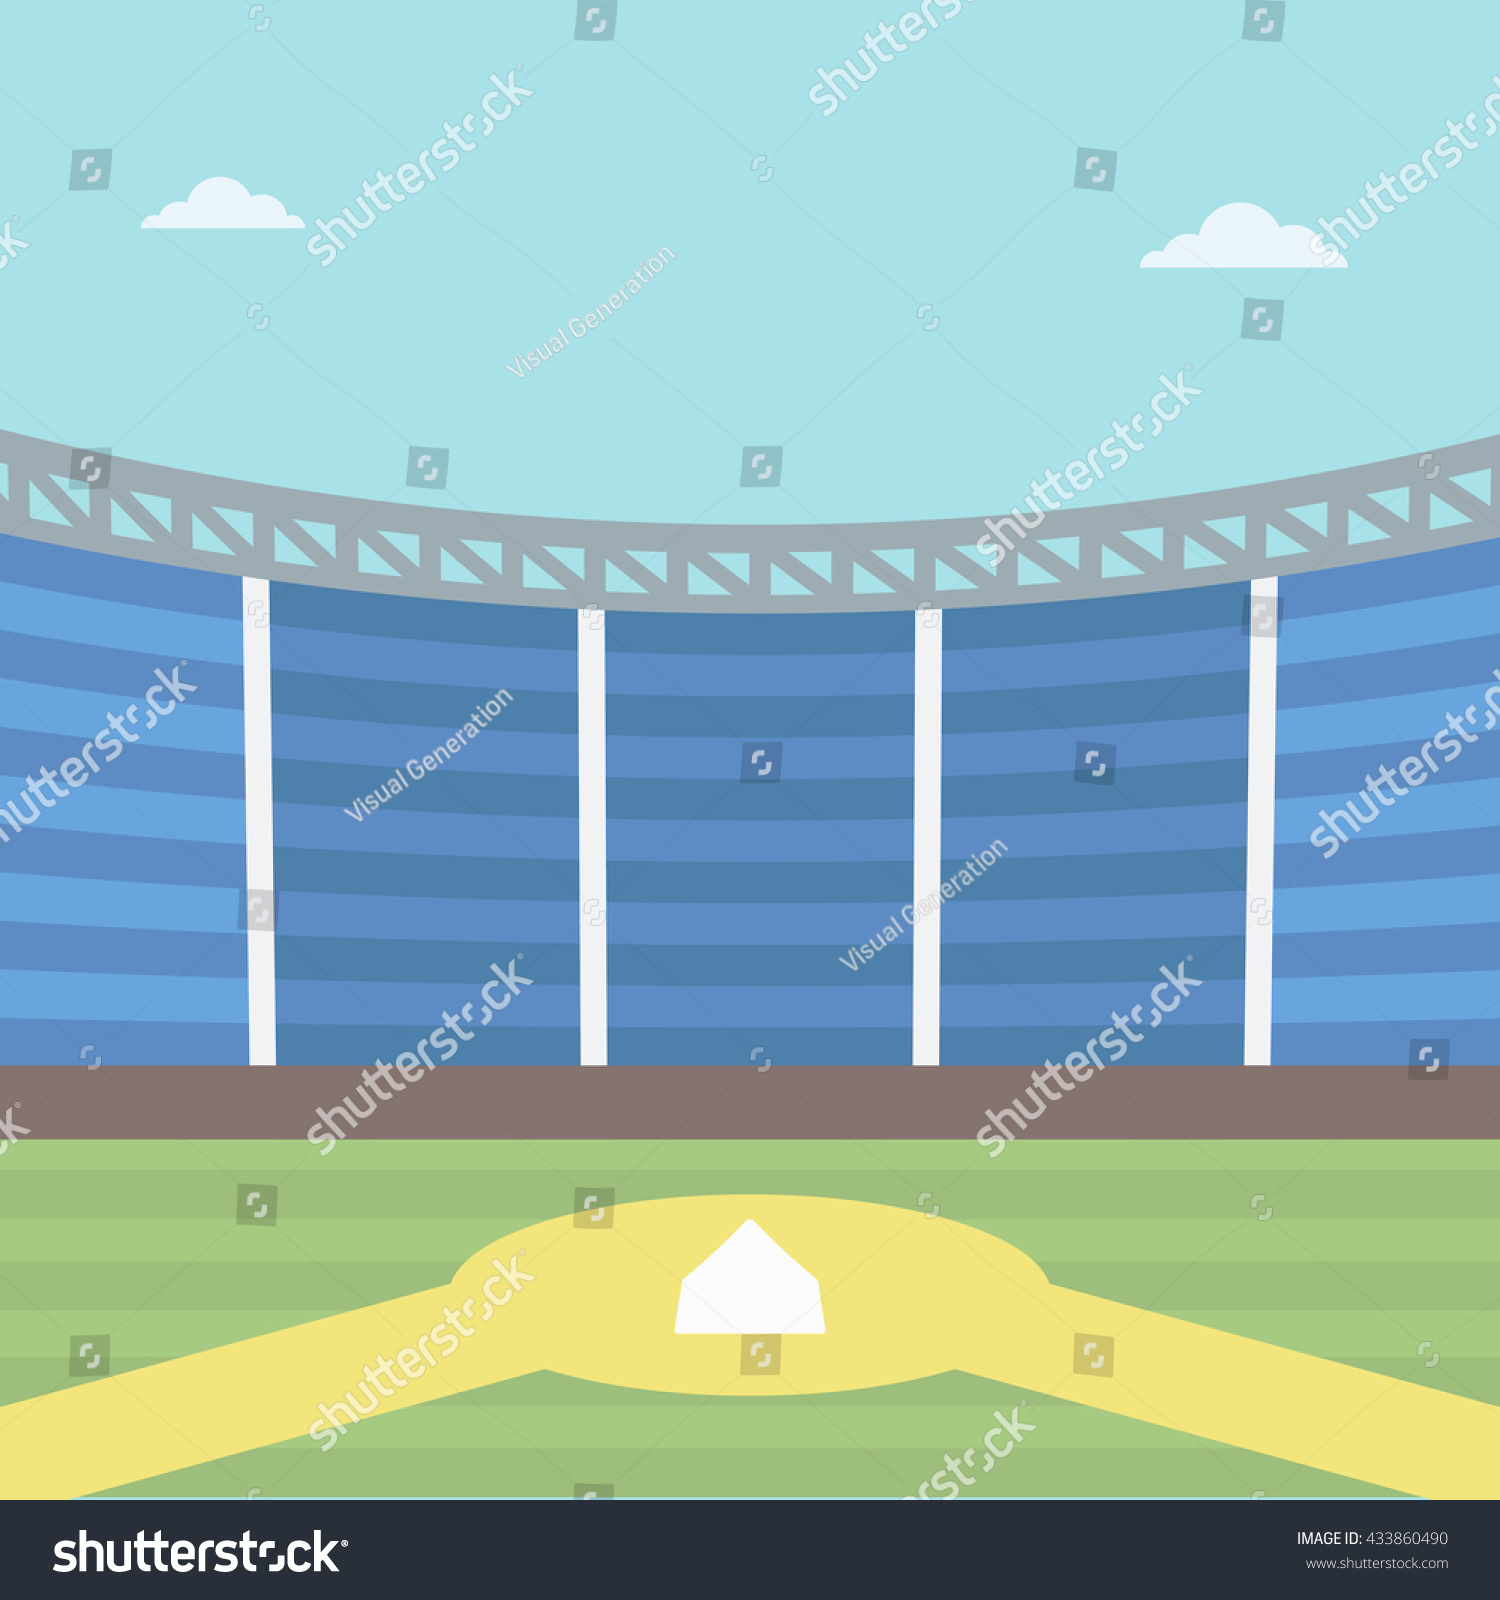 Background Baseball Stadium Baseball Field Vector Stock Vector